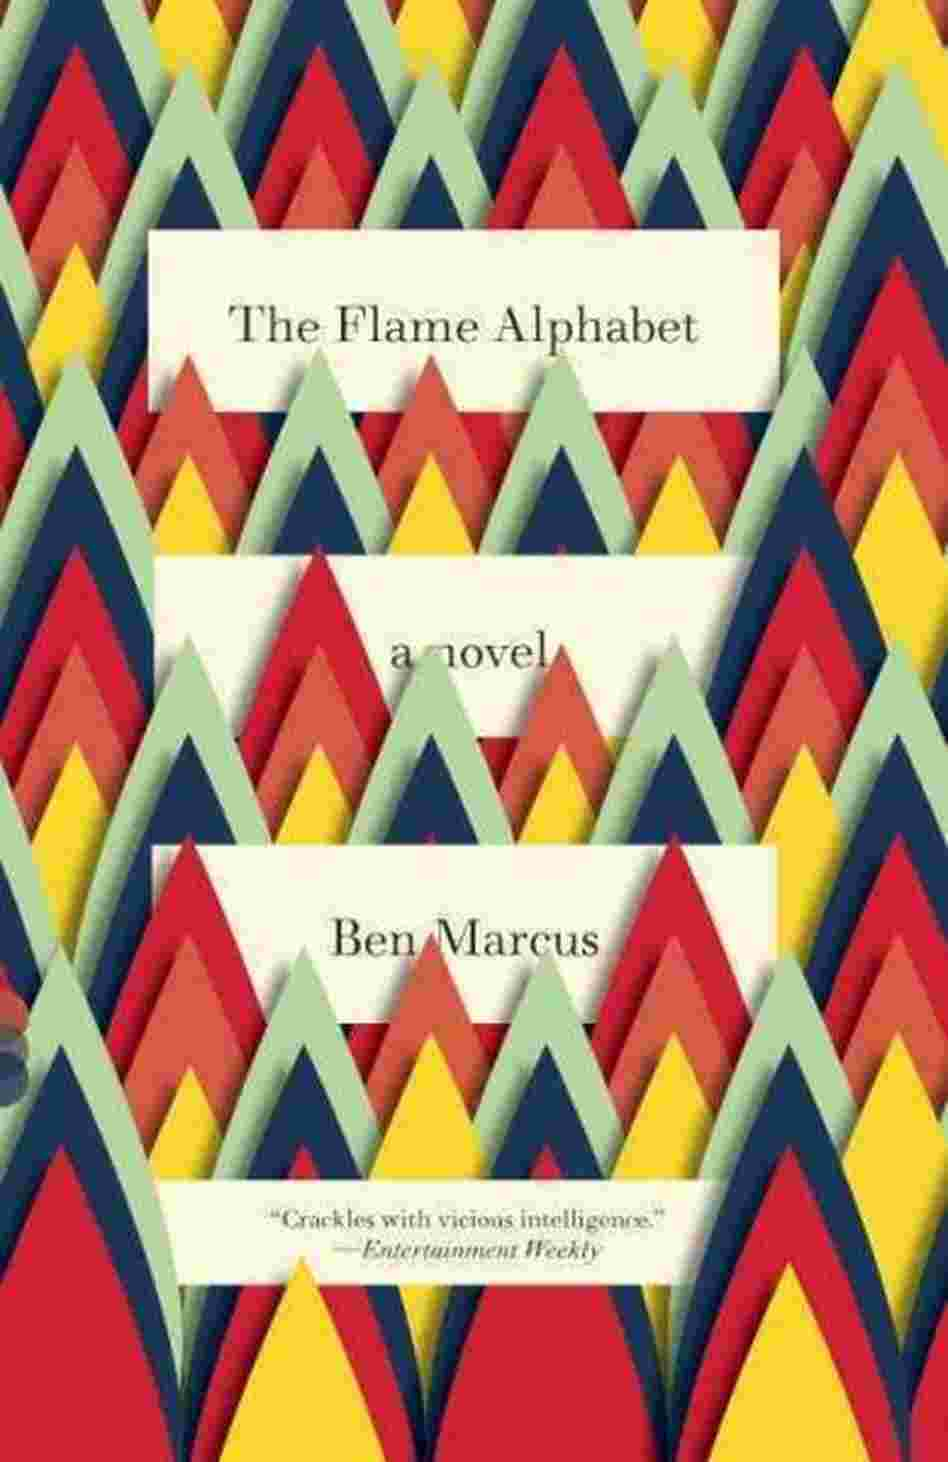 The Flame Alphabet